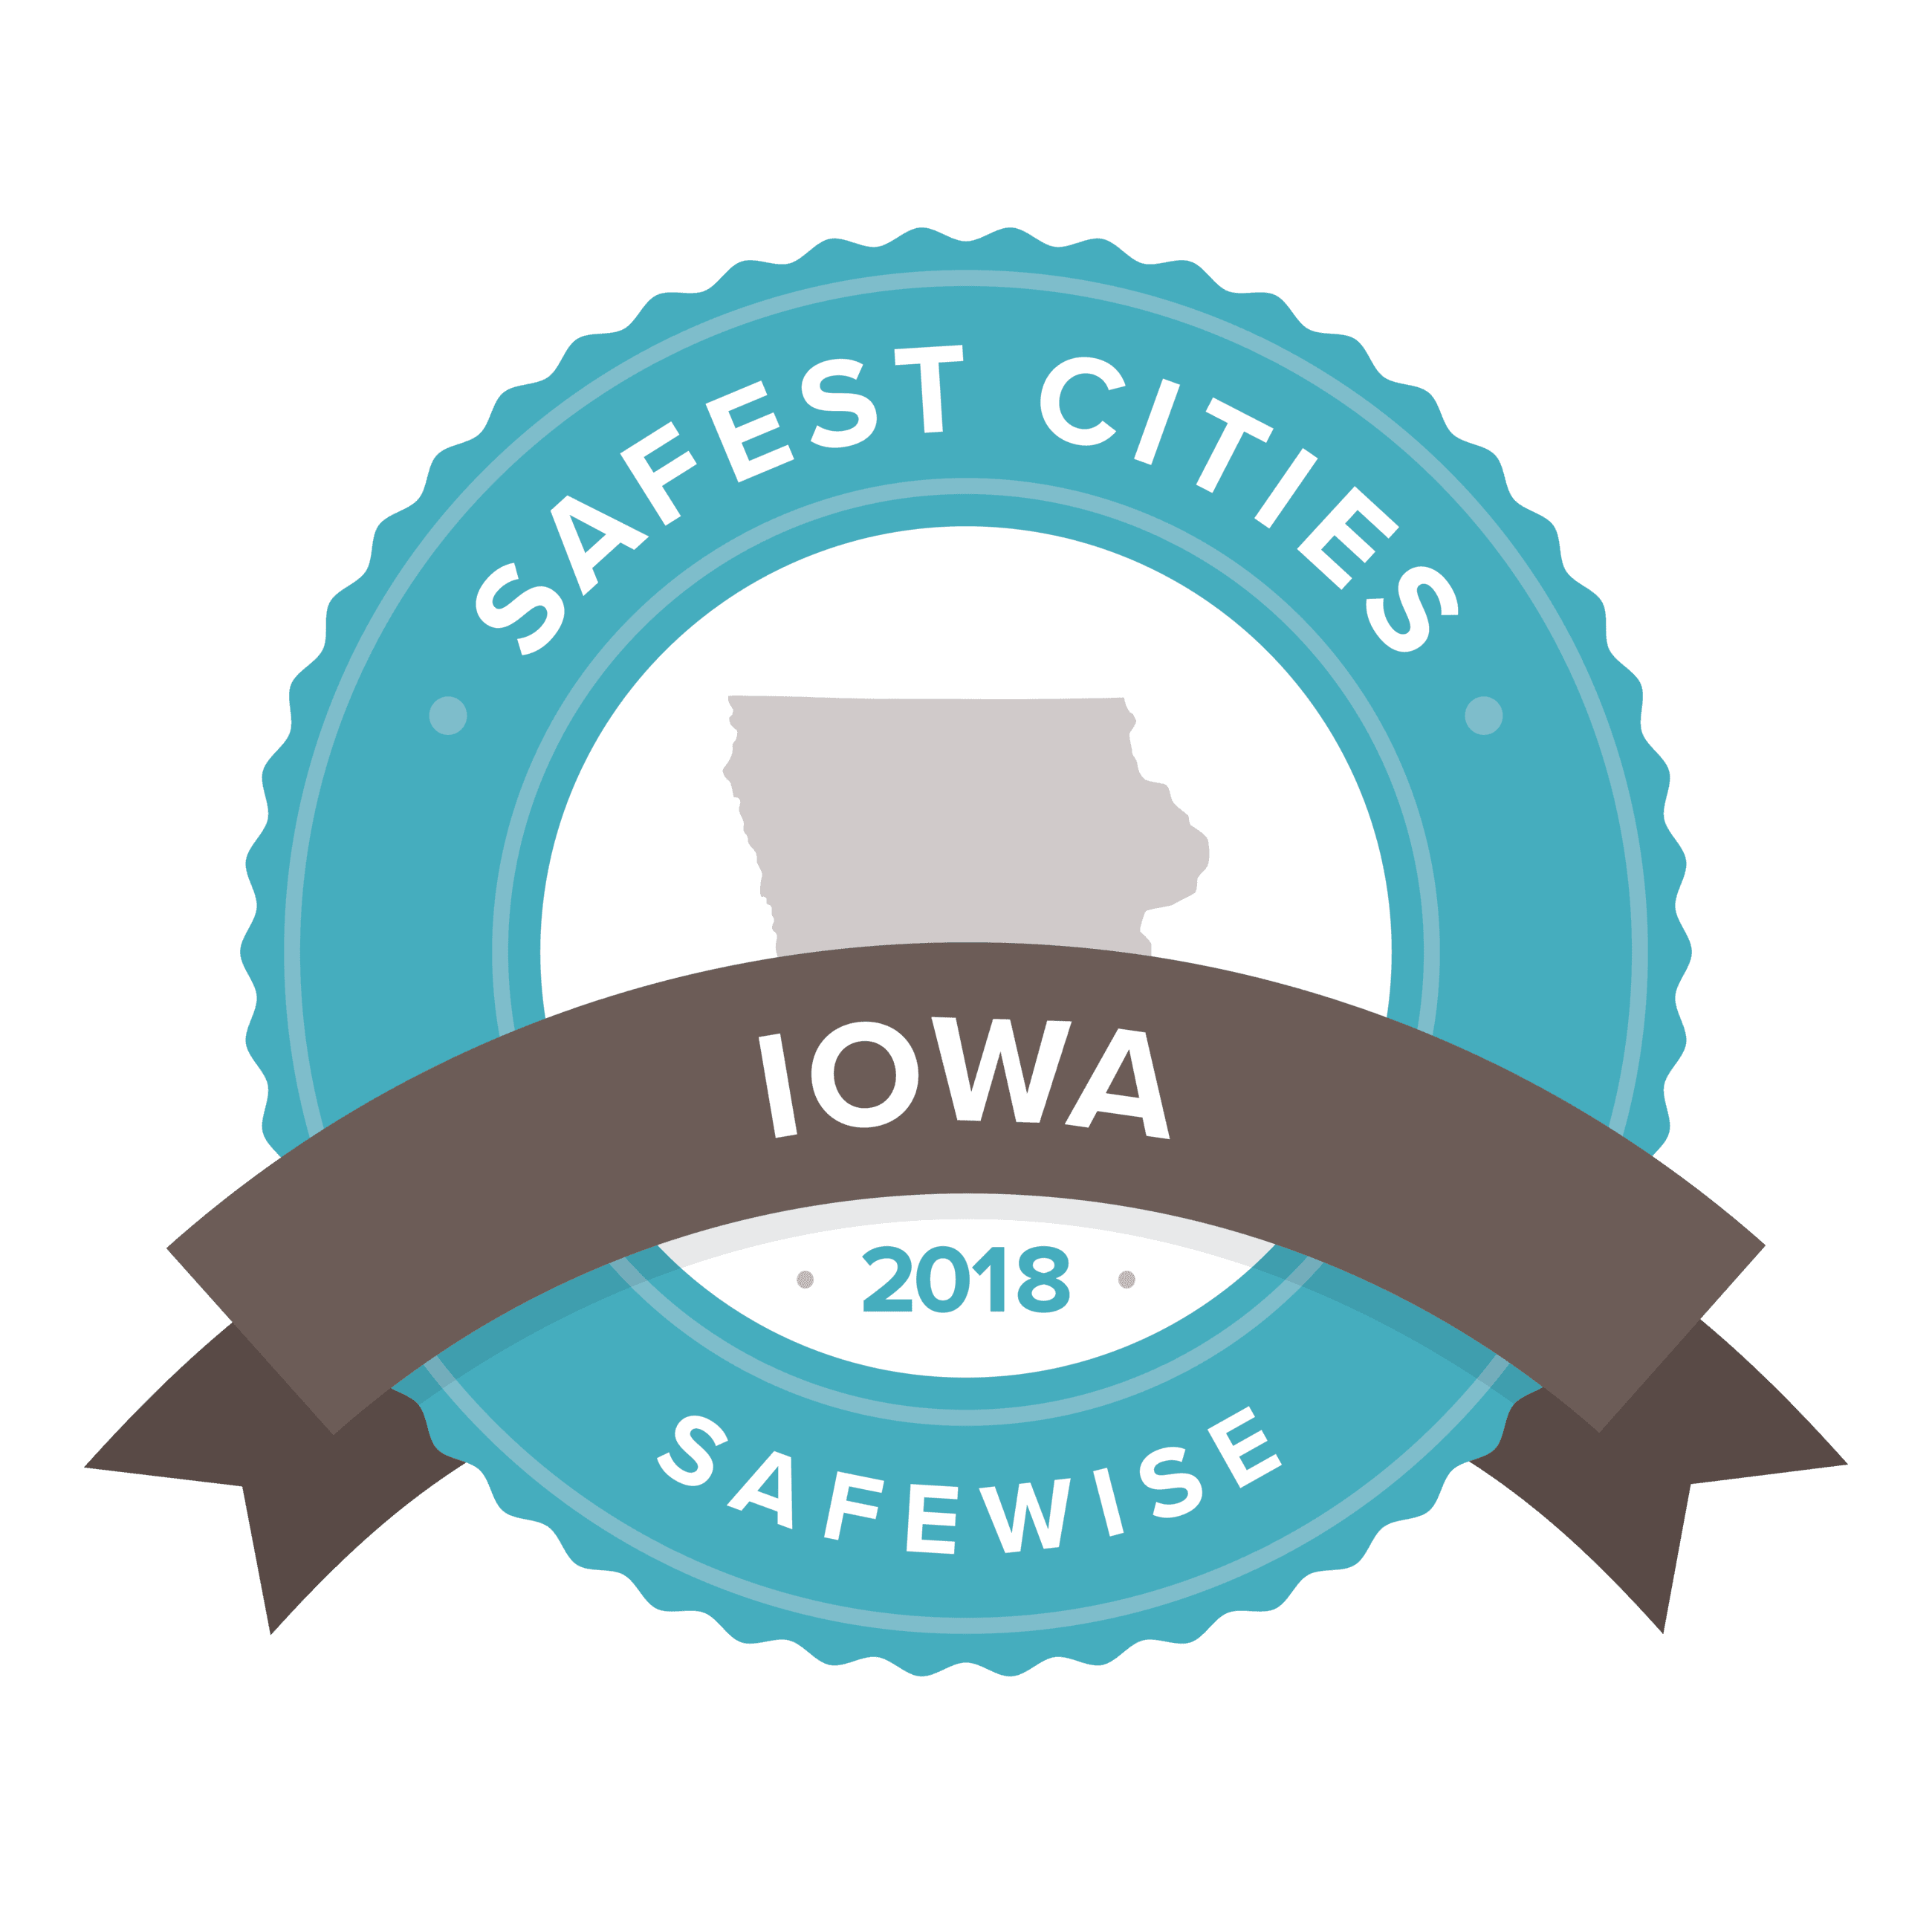 SW-SafestCitiesLogo-2018-01-24-18_iowa (002)